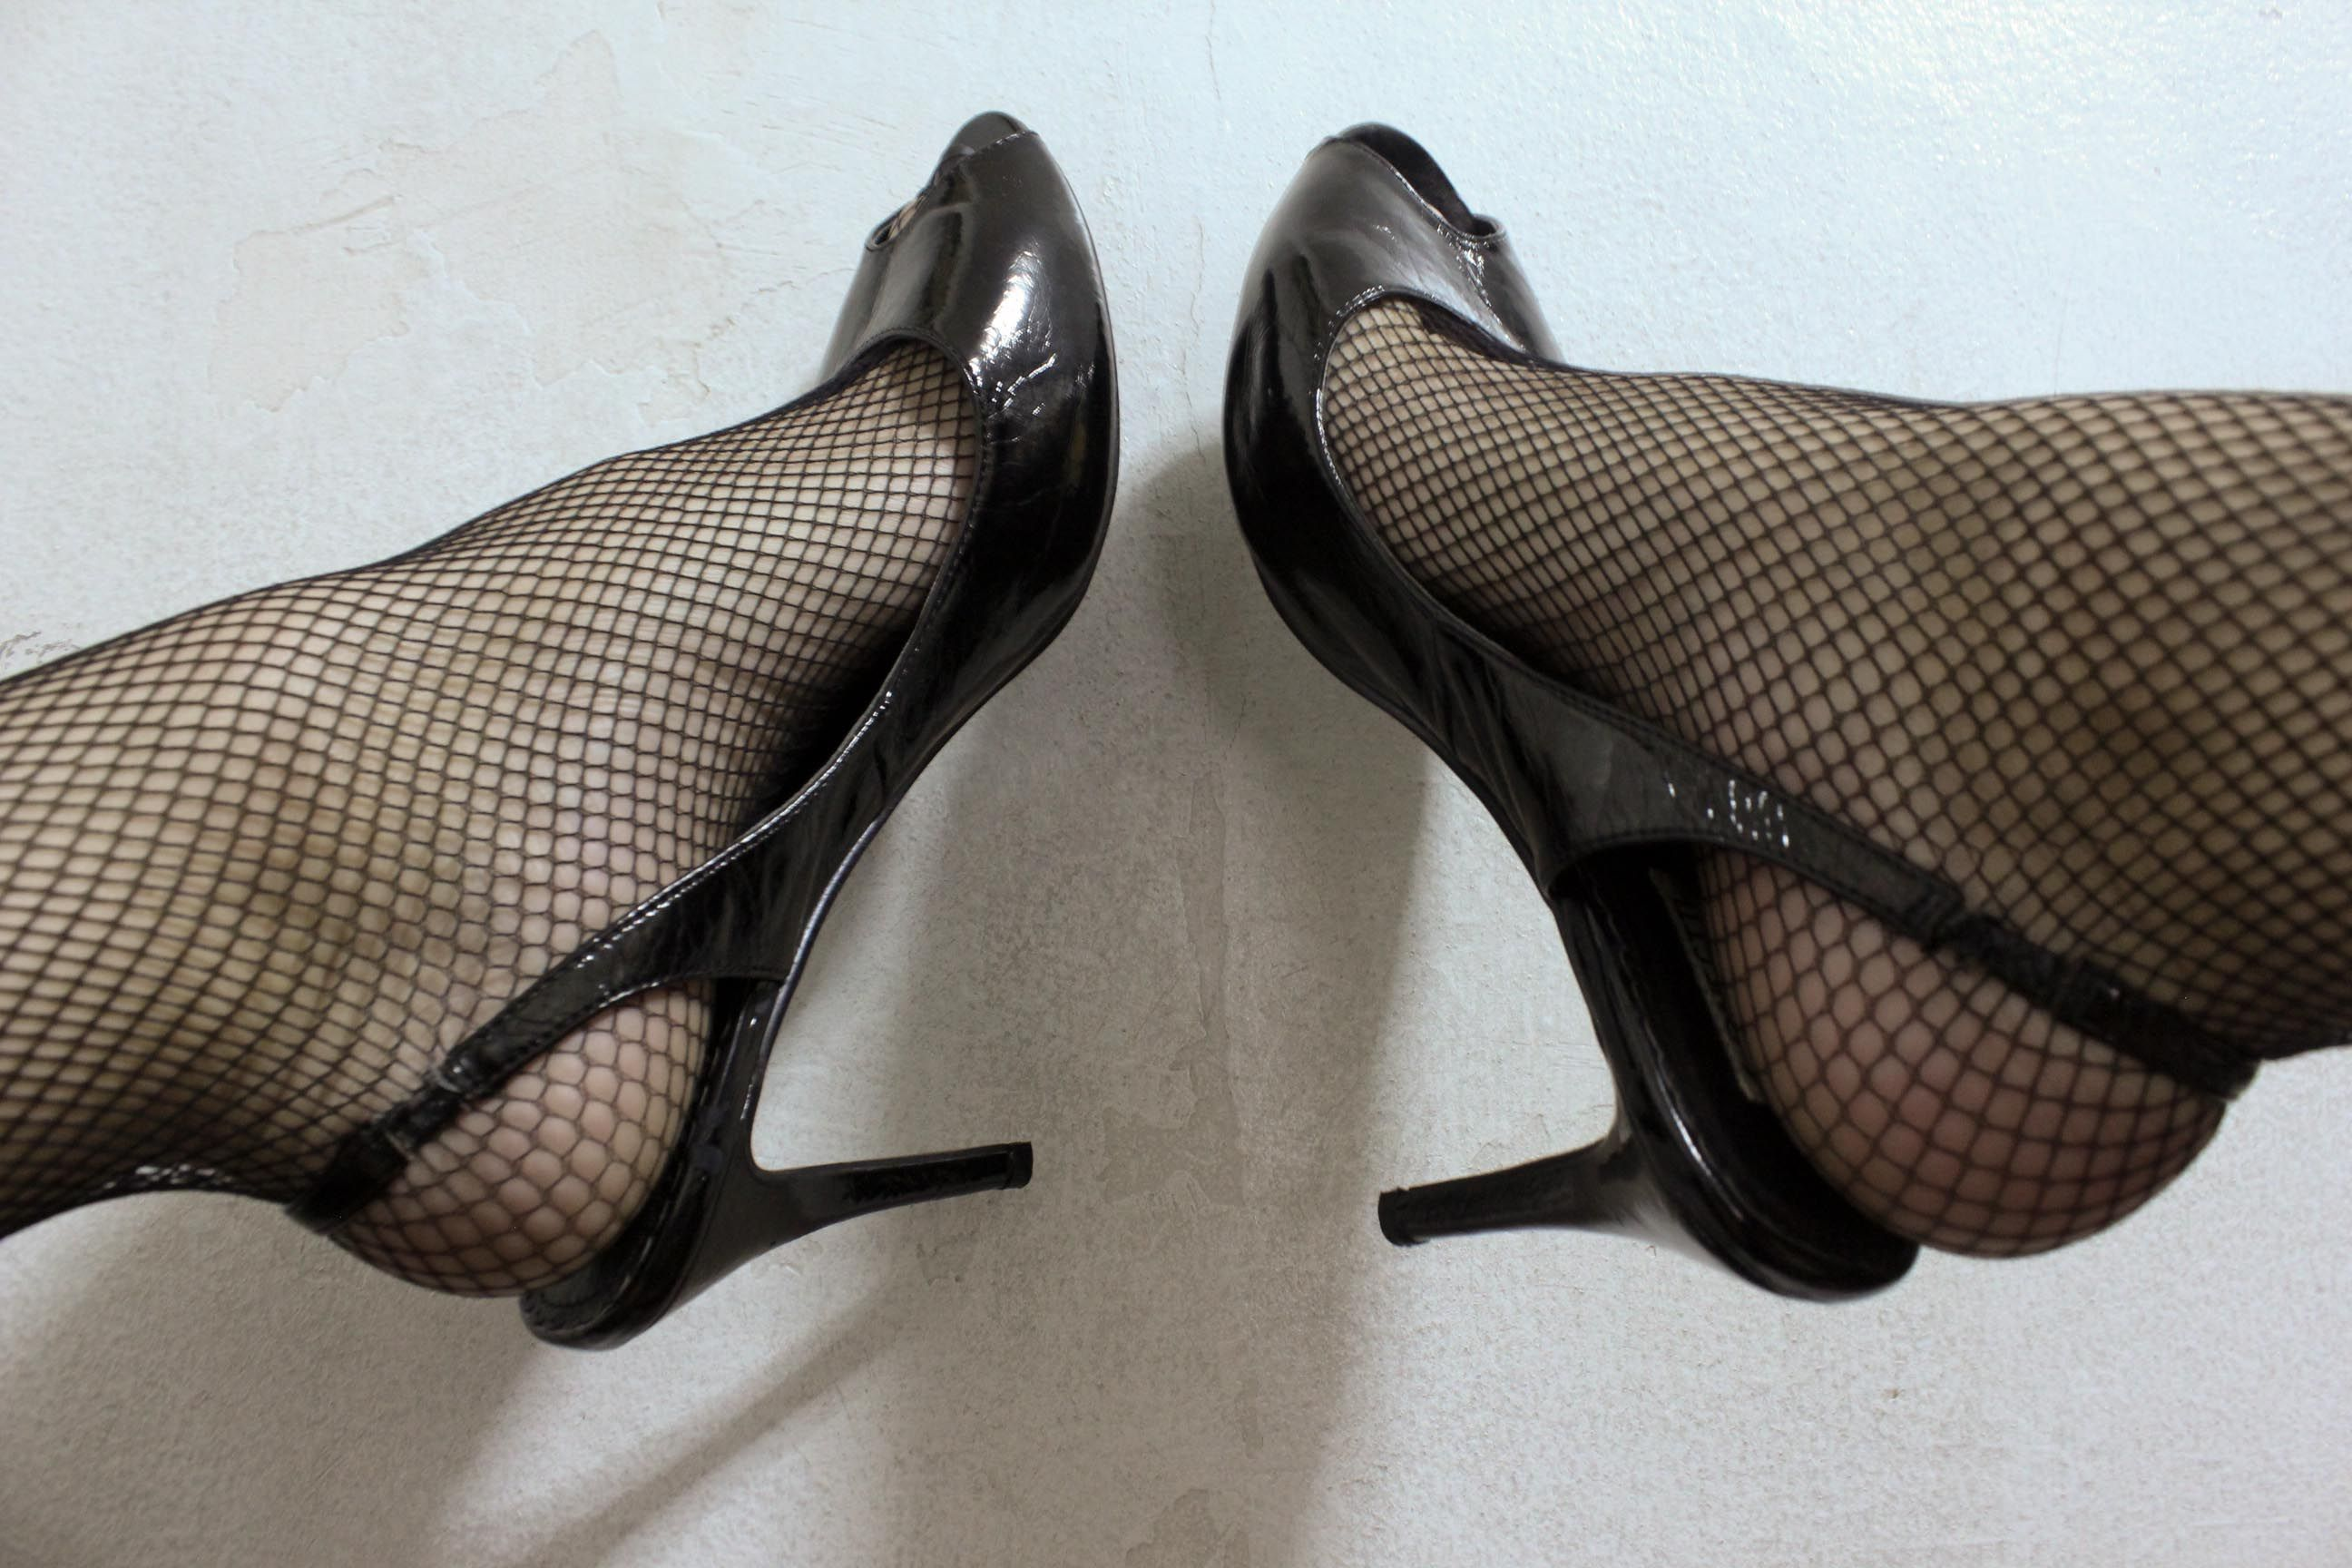 Pin By Bunter On Tights And High Heels Heels Stockings Heels Pantyhose